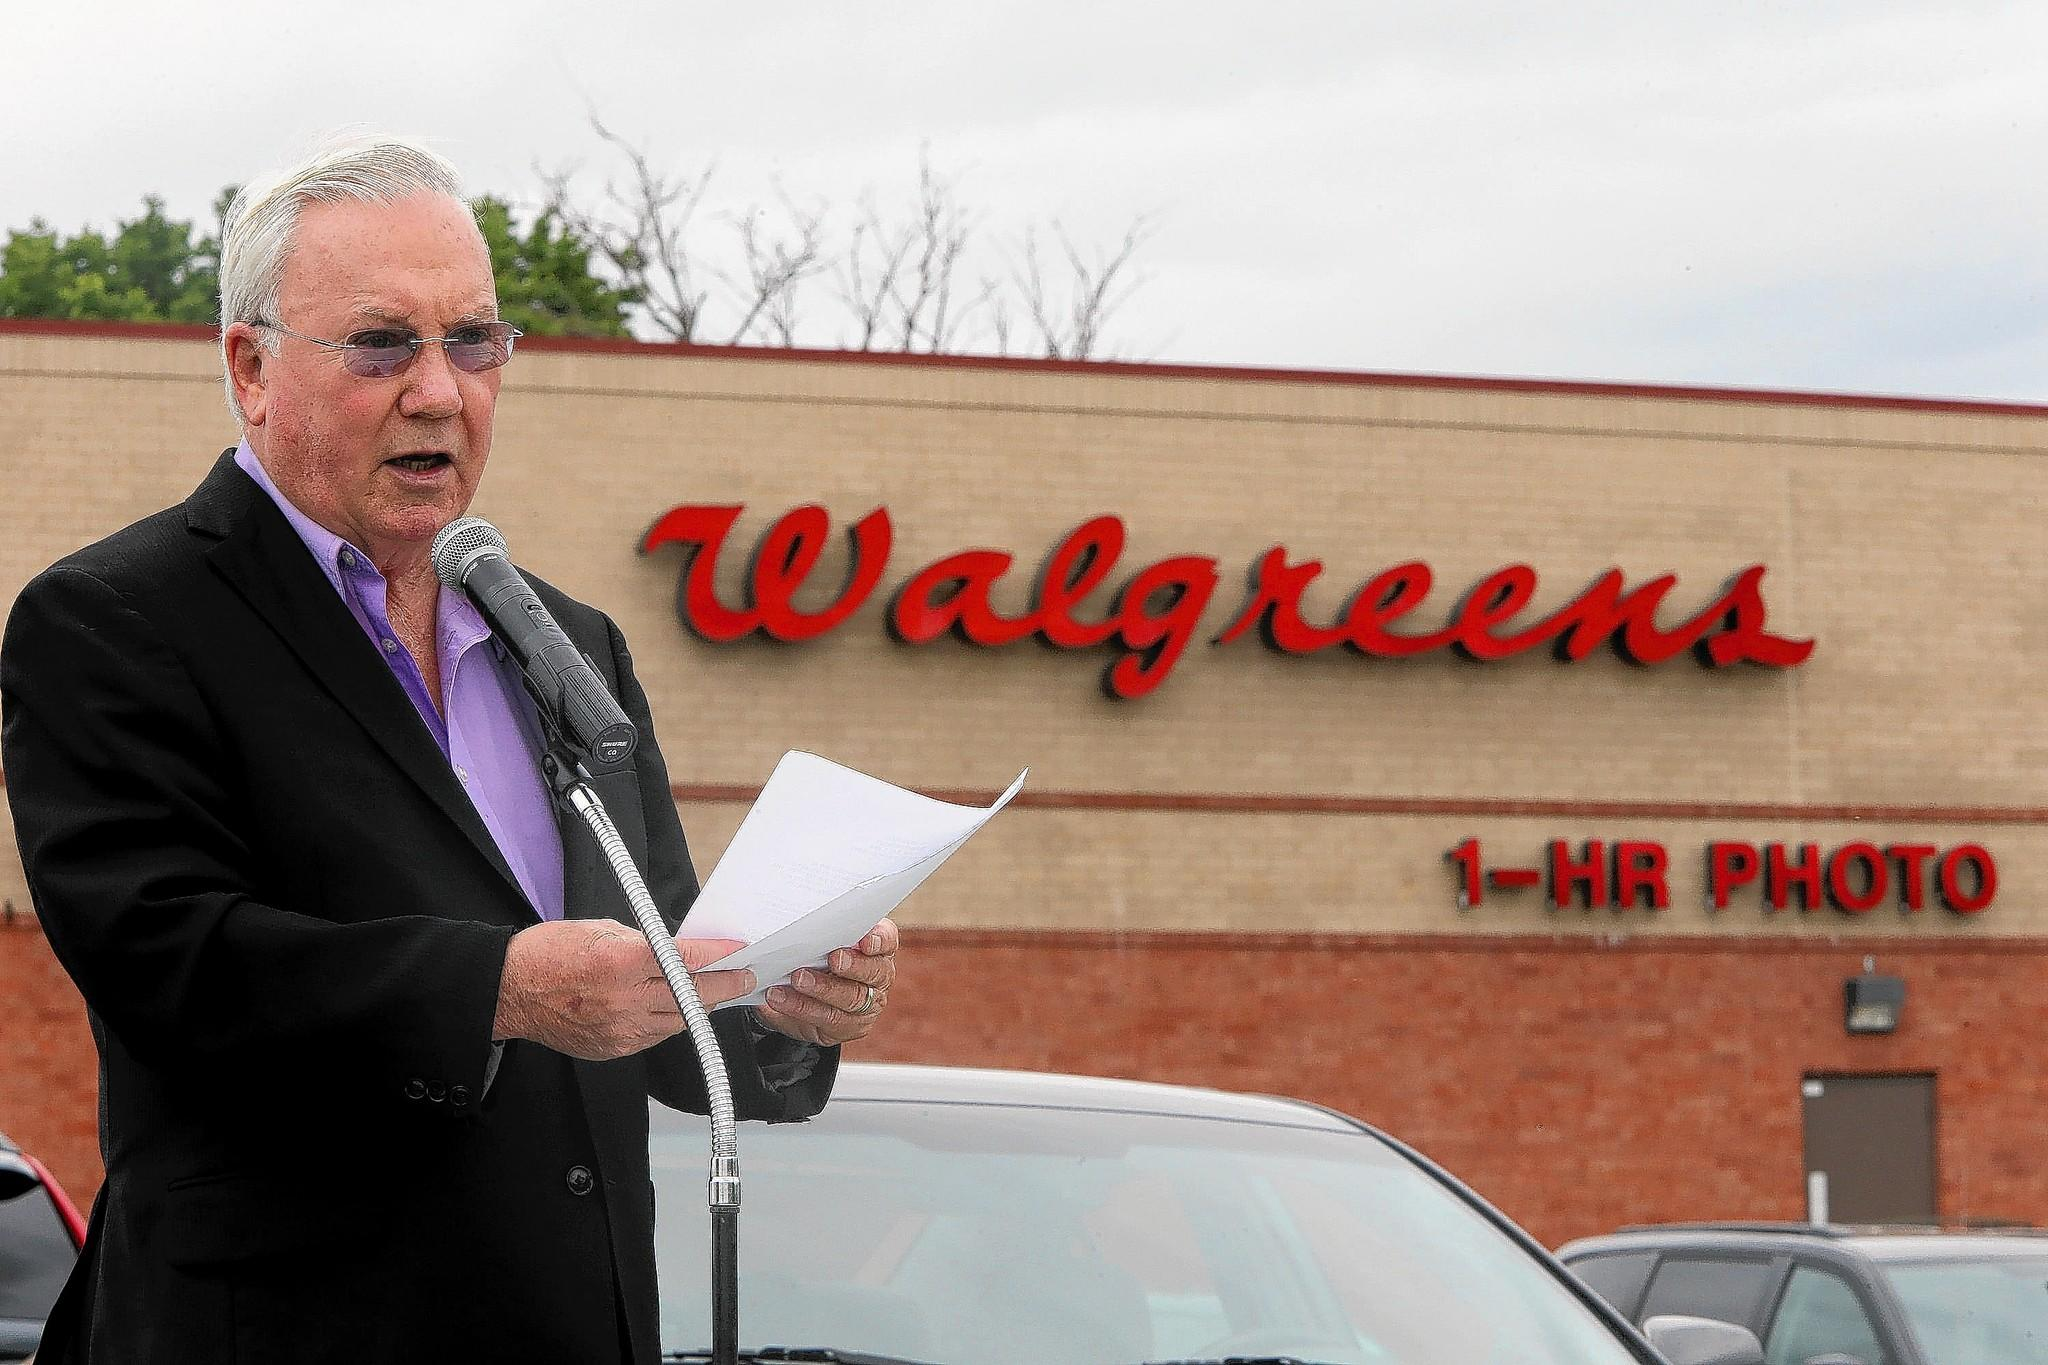 Dixon Mayor Jim Burke said it would be an affront to the late Charles Walgreen if the company moved its headquarters abroad for tax-relief purposes.